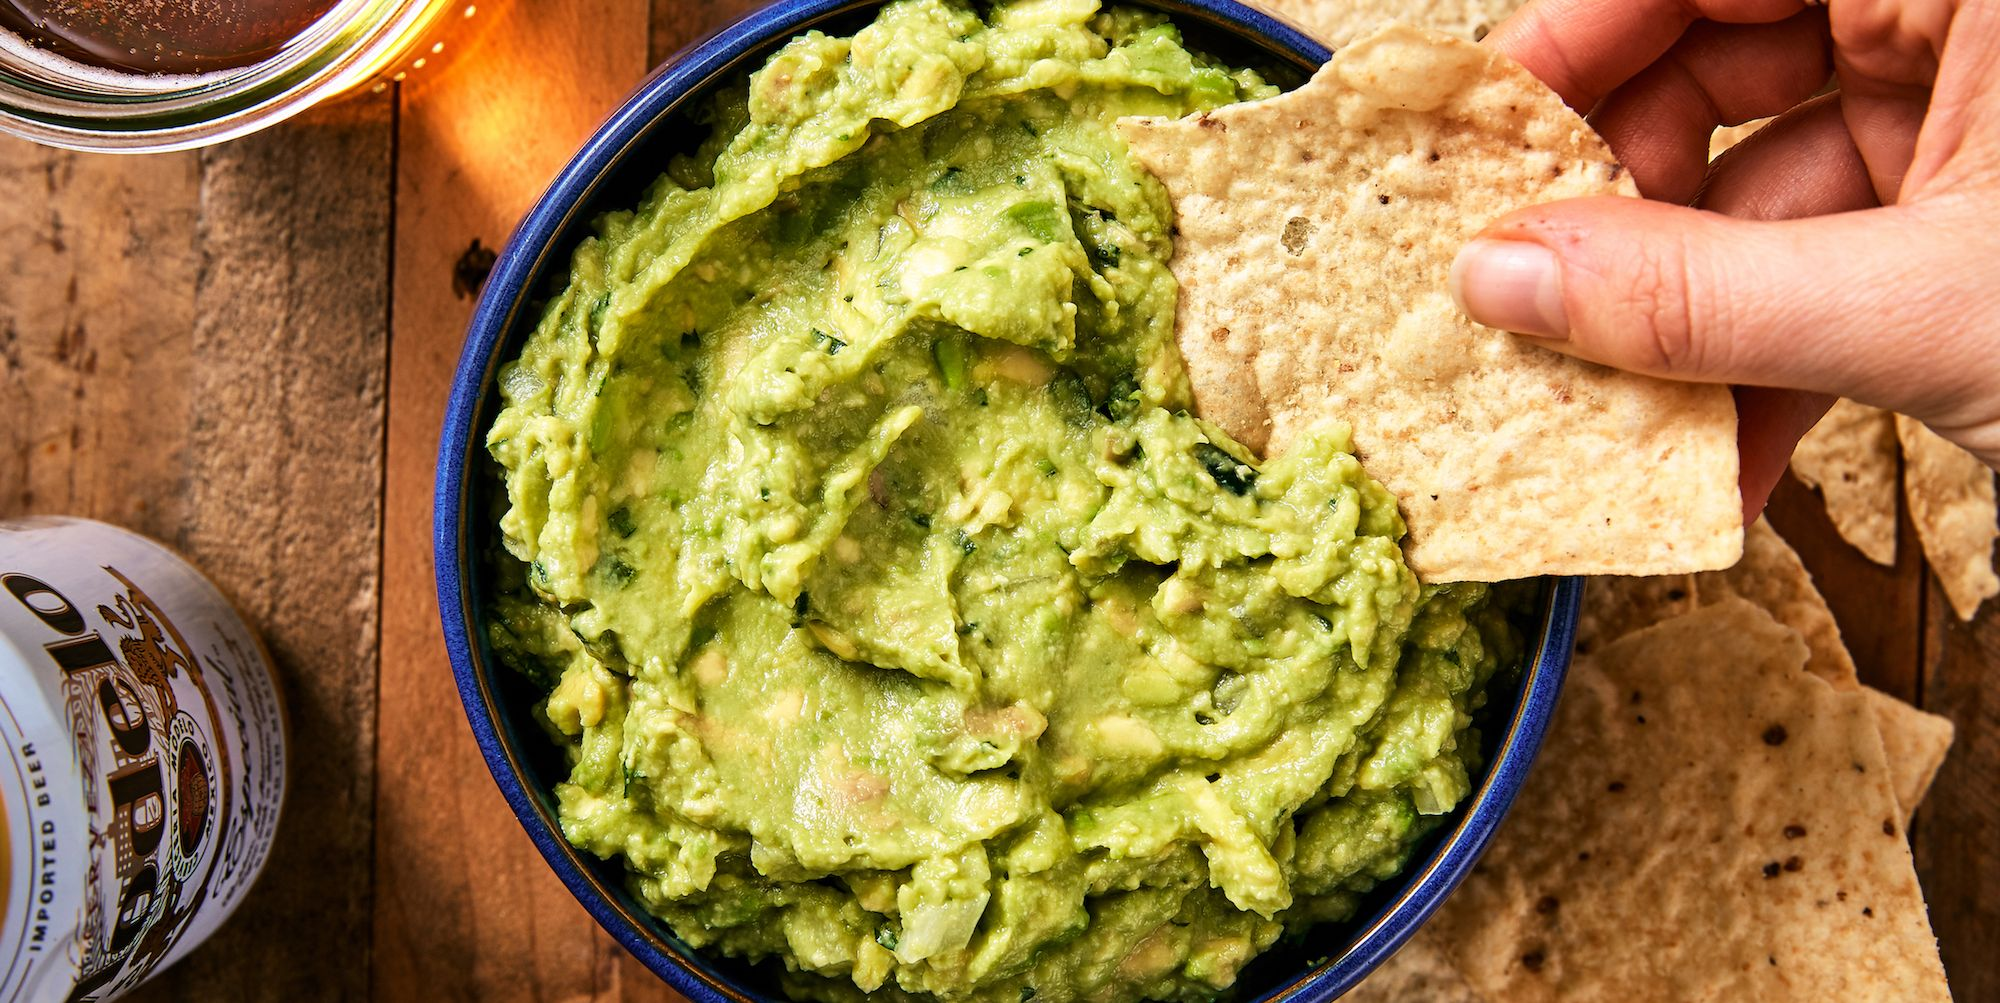 16 Green Foods To Make On St. Patrick's Day